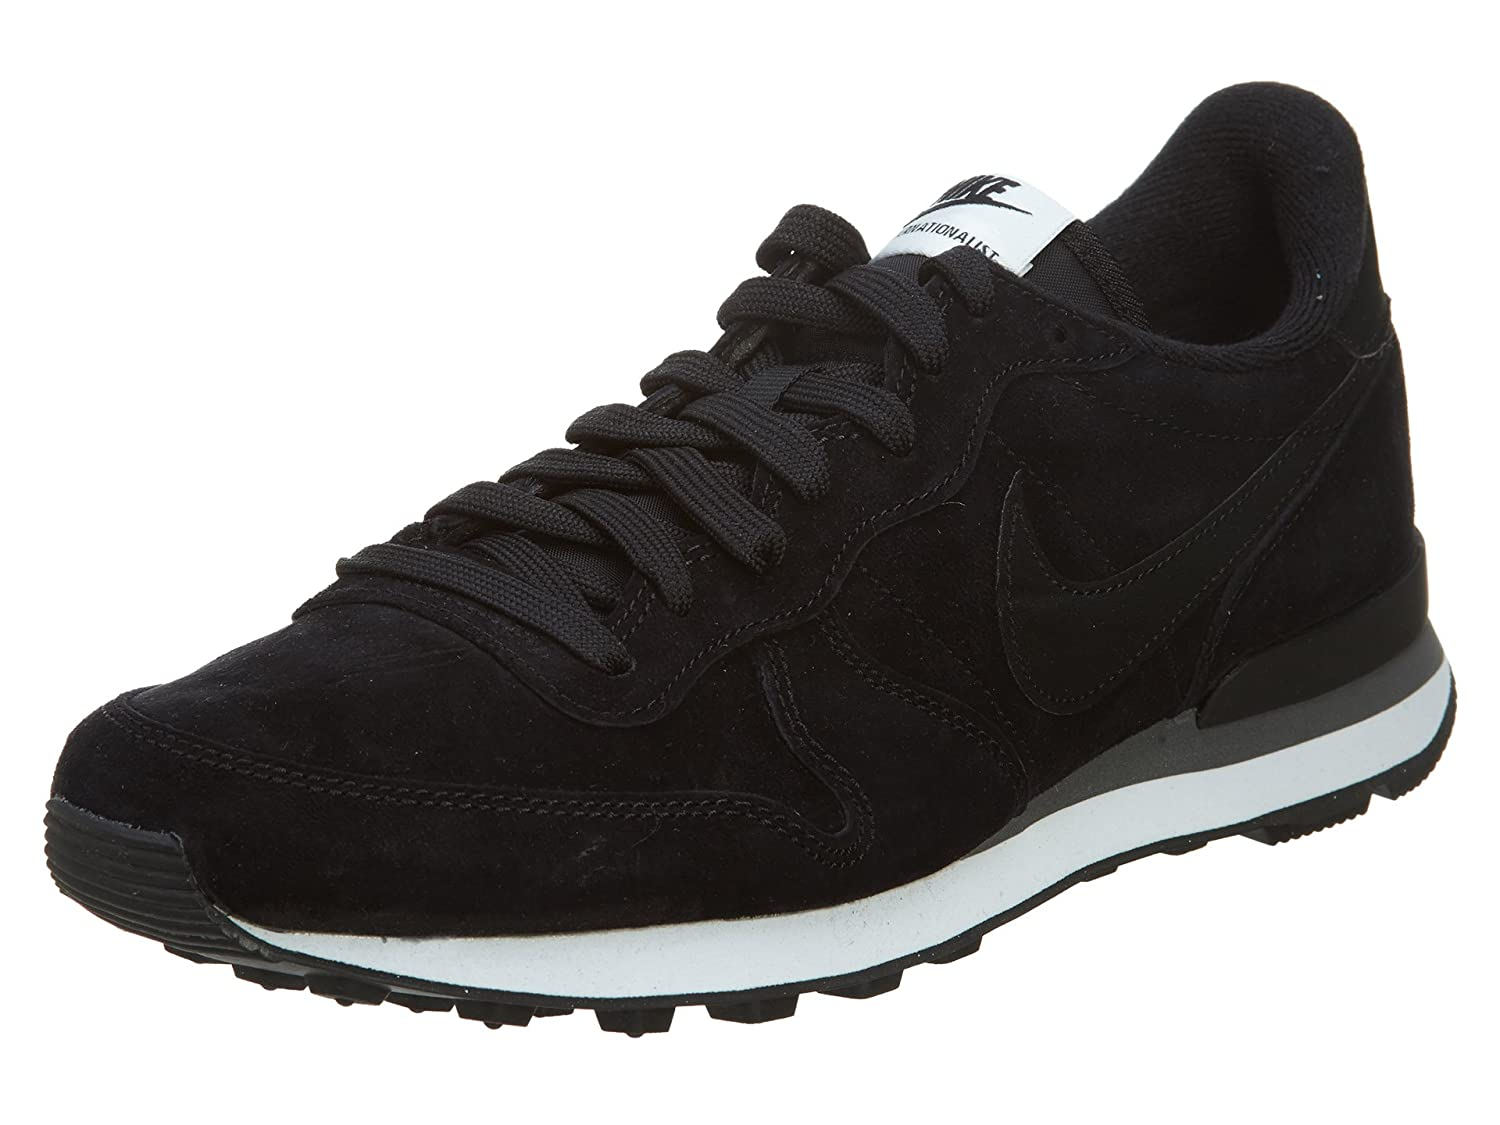 new style 7ff25 0e3c3 Nike Internationalist Leather, Scarpe da Corsa Uomo, Bianco Nero-Grigio  Scuro-White, 48 1 2 EU  Amazon.it  Scarpe e borse